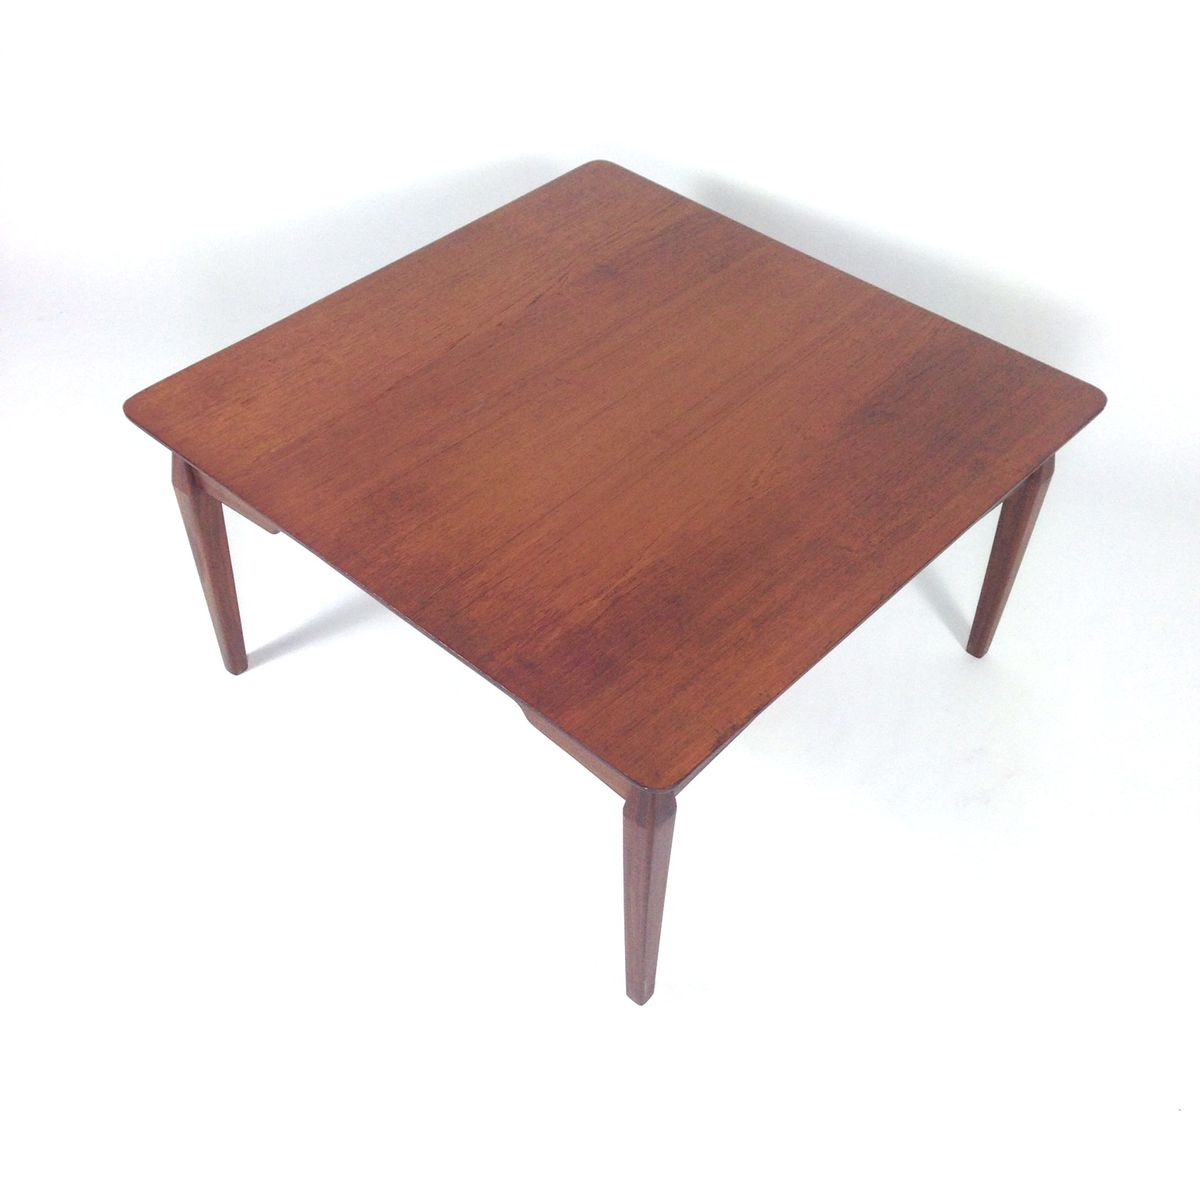 Teak Coffee Table From W B 1950s For Sale At Pamono